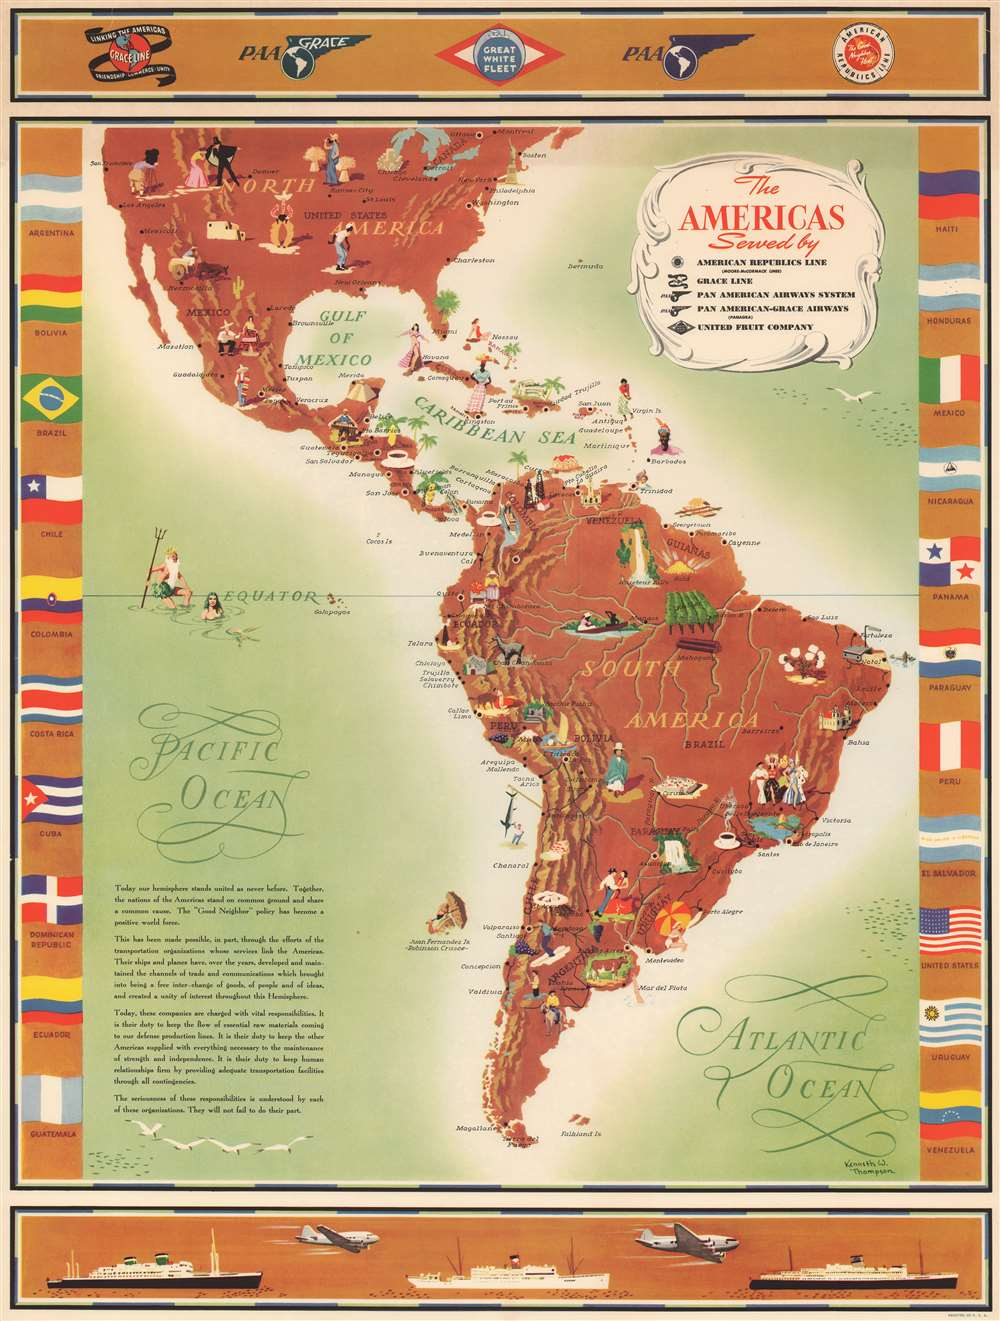 The Americas Served by American Republic Lines ; Grace Line ; Pan American Airways System Pan American-Grace Airways ; United Fruit Company. - Main View